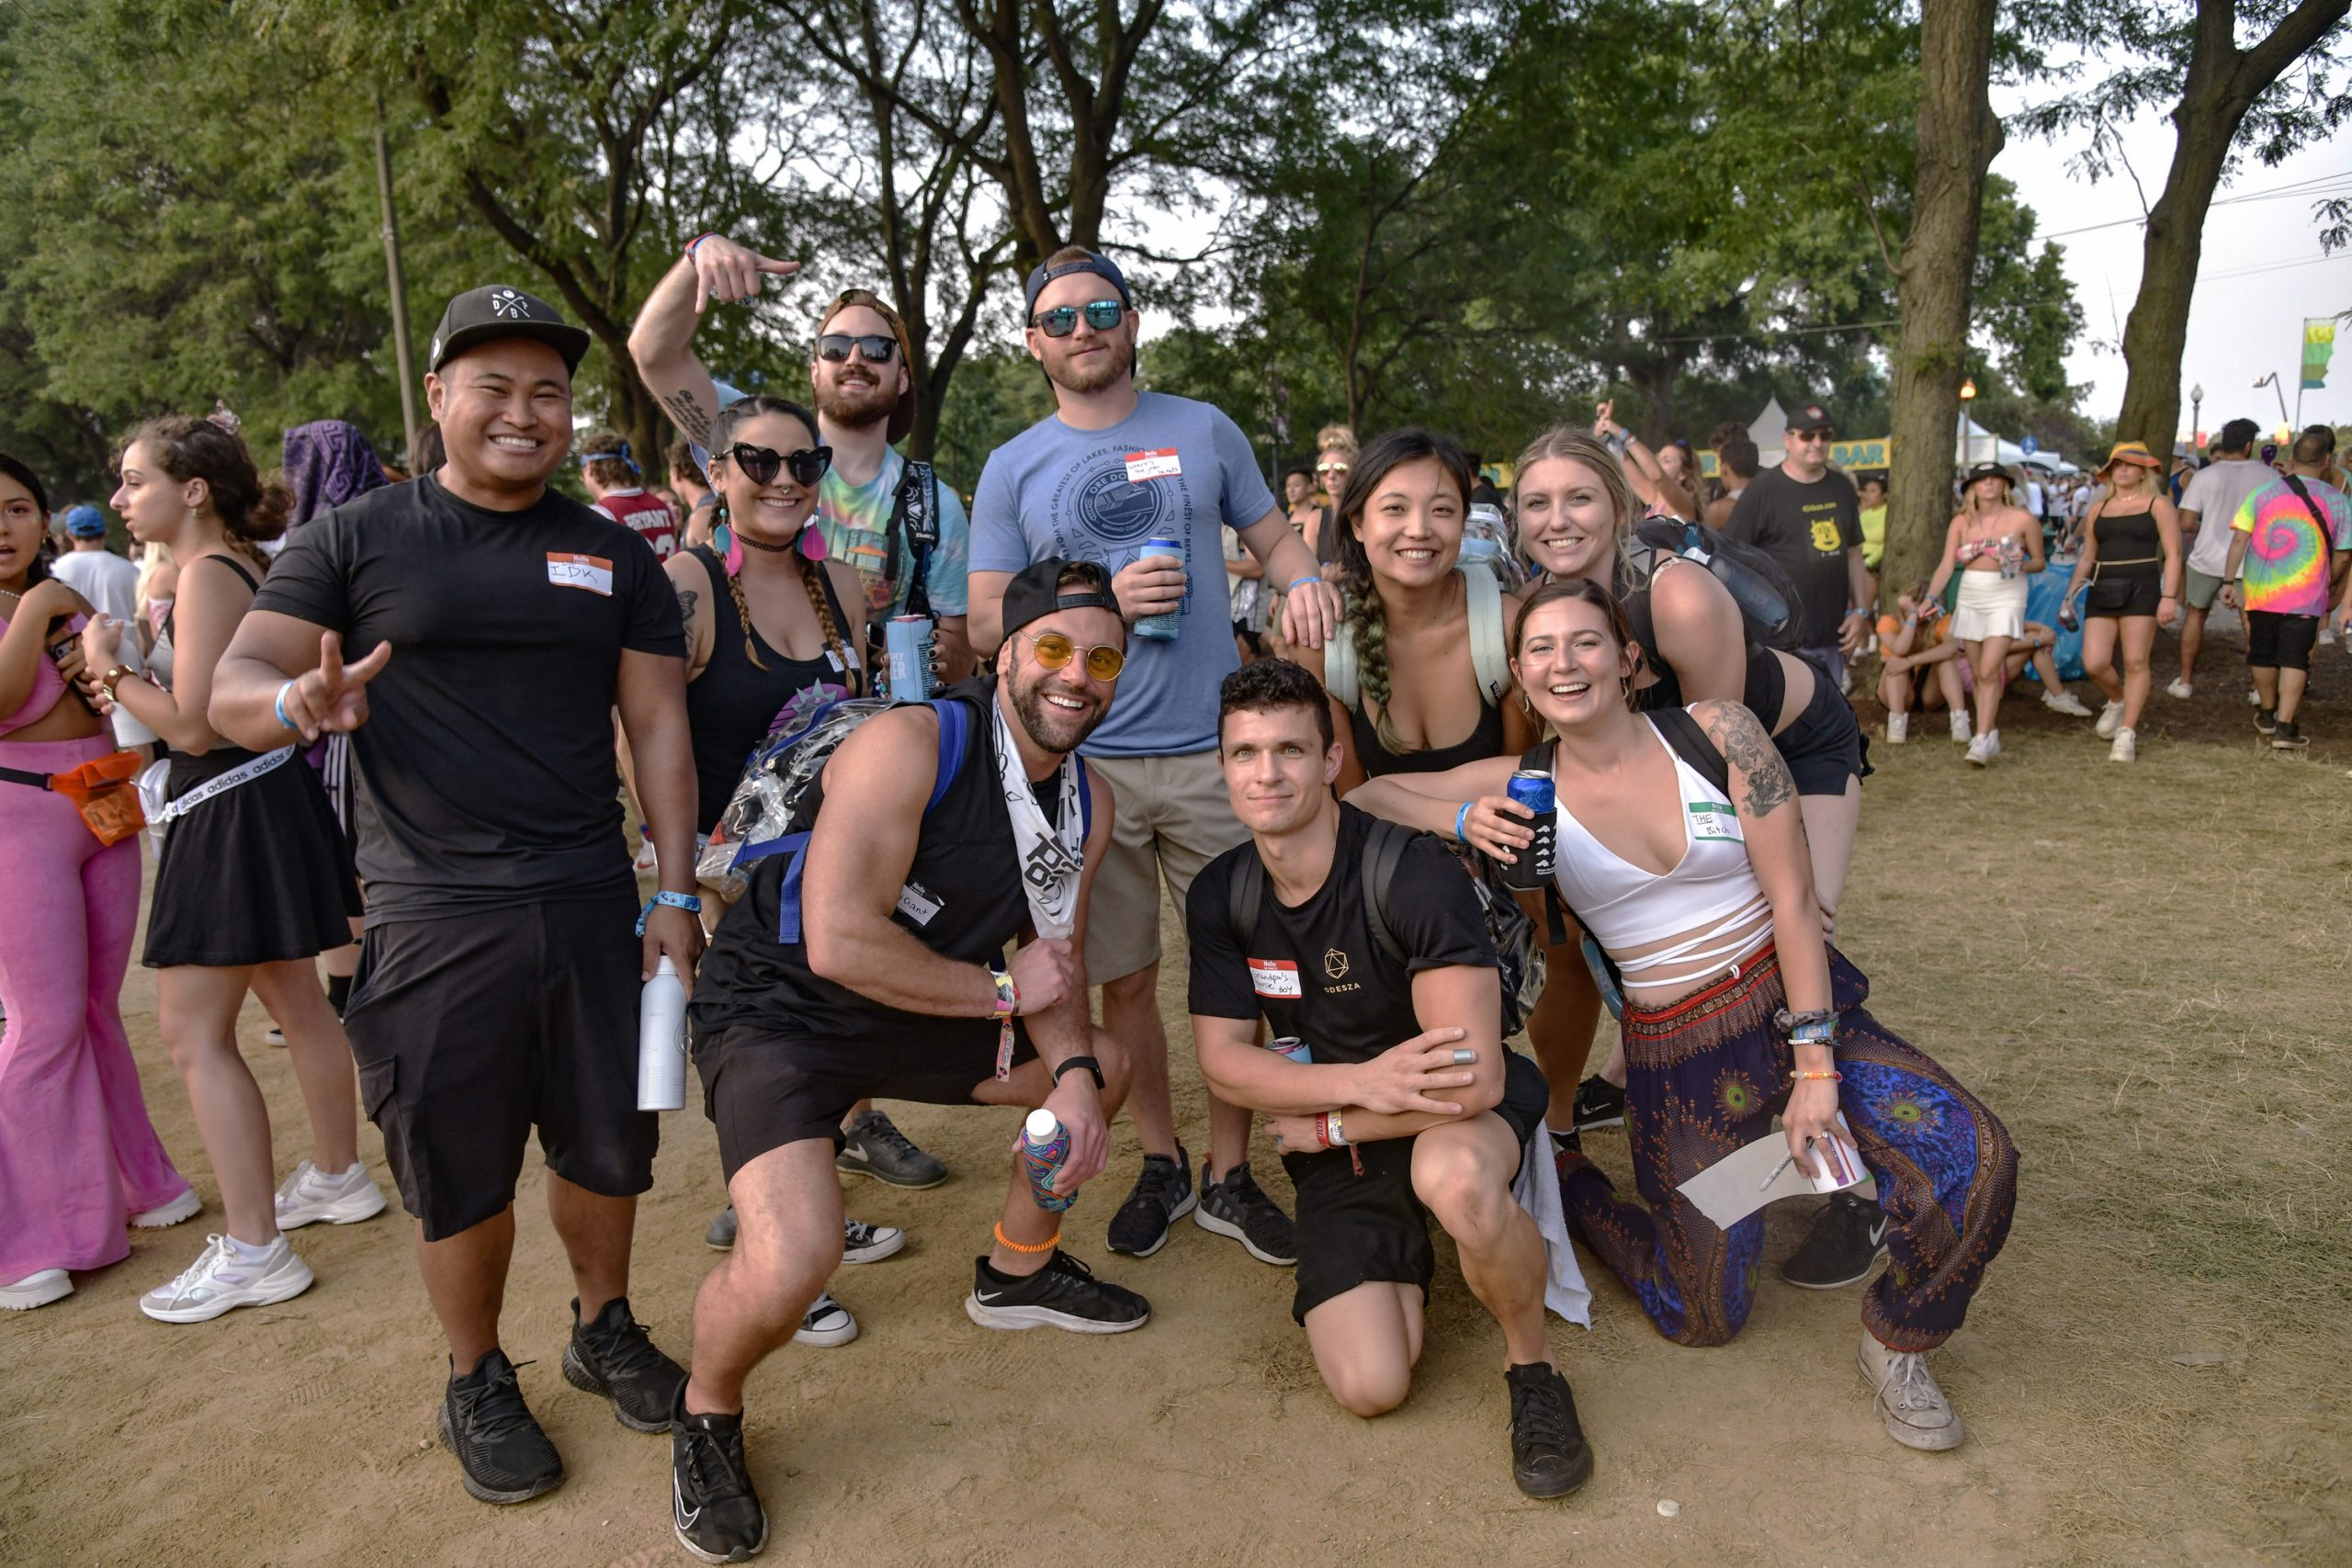 Miley Cyrus Puts The Icing On The Cake To A Great First Day Of Lollapalooza 7